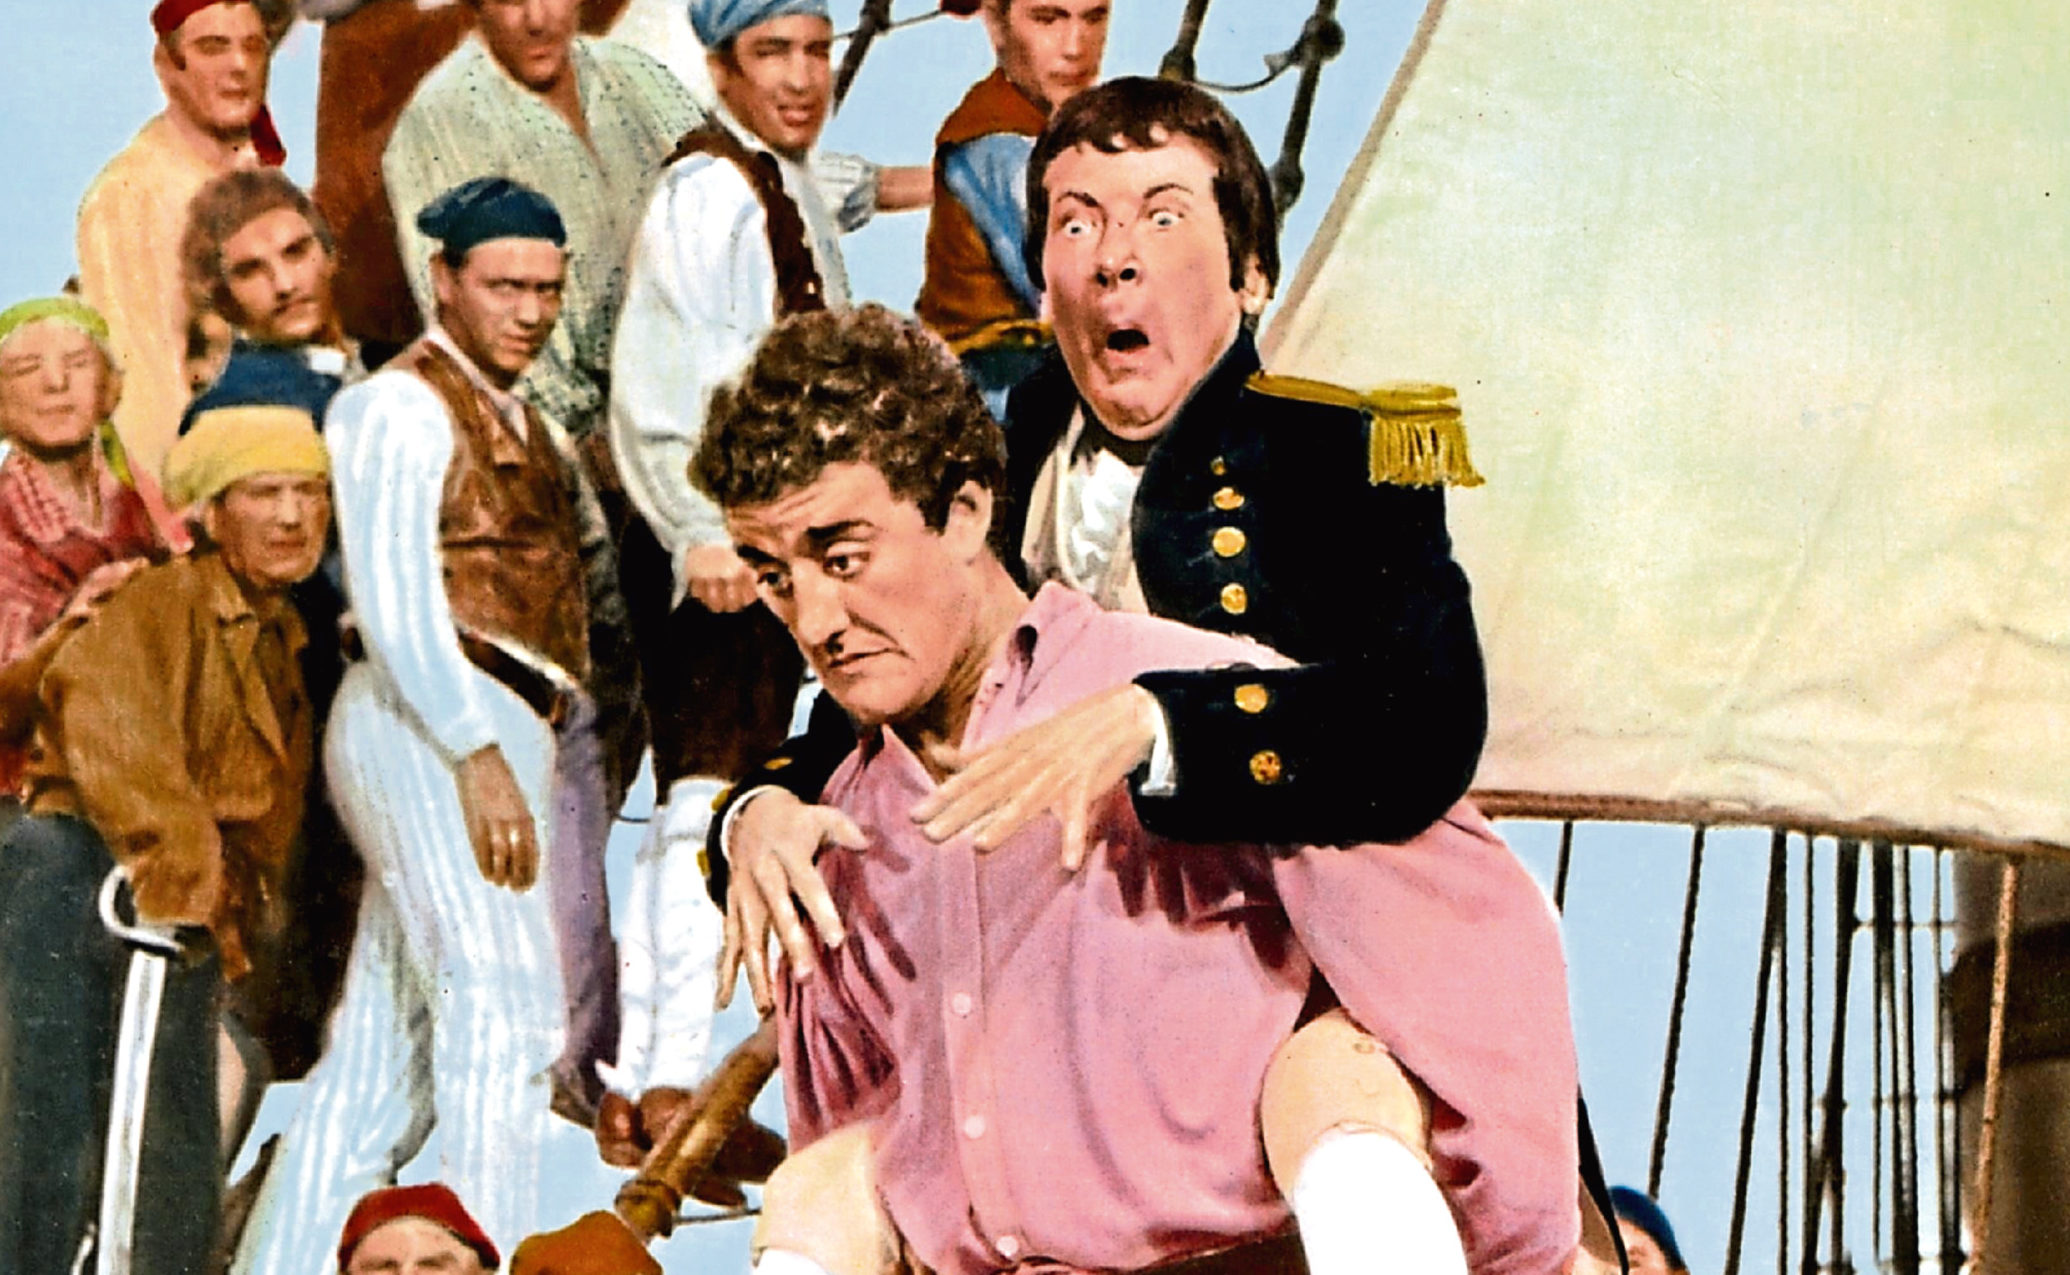 Bernard Cribbins and Kenneth Williams in Carry On Jack, 1963 (Allstar / ANGLO / STUDIOCANAL)